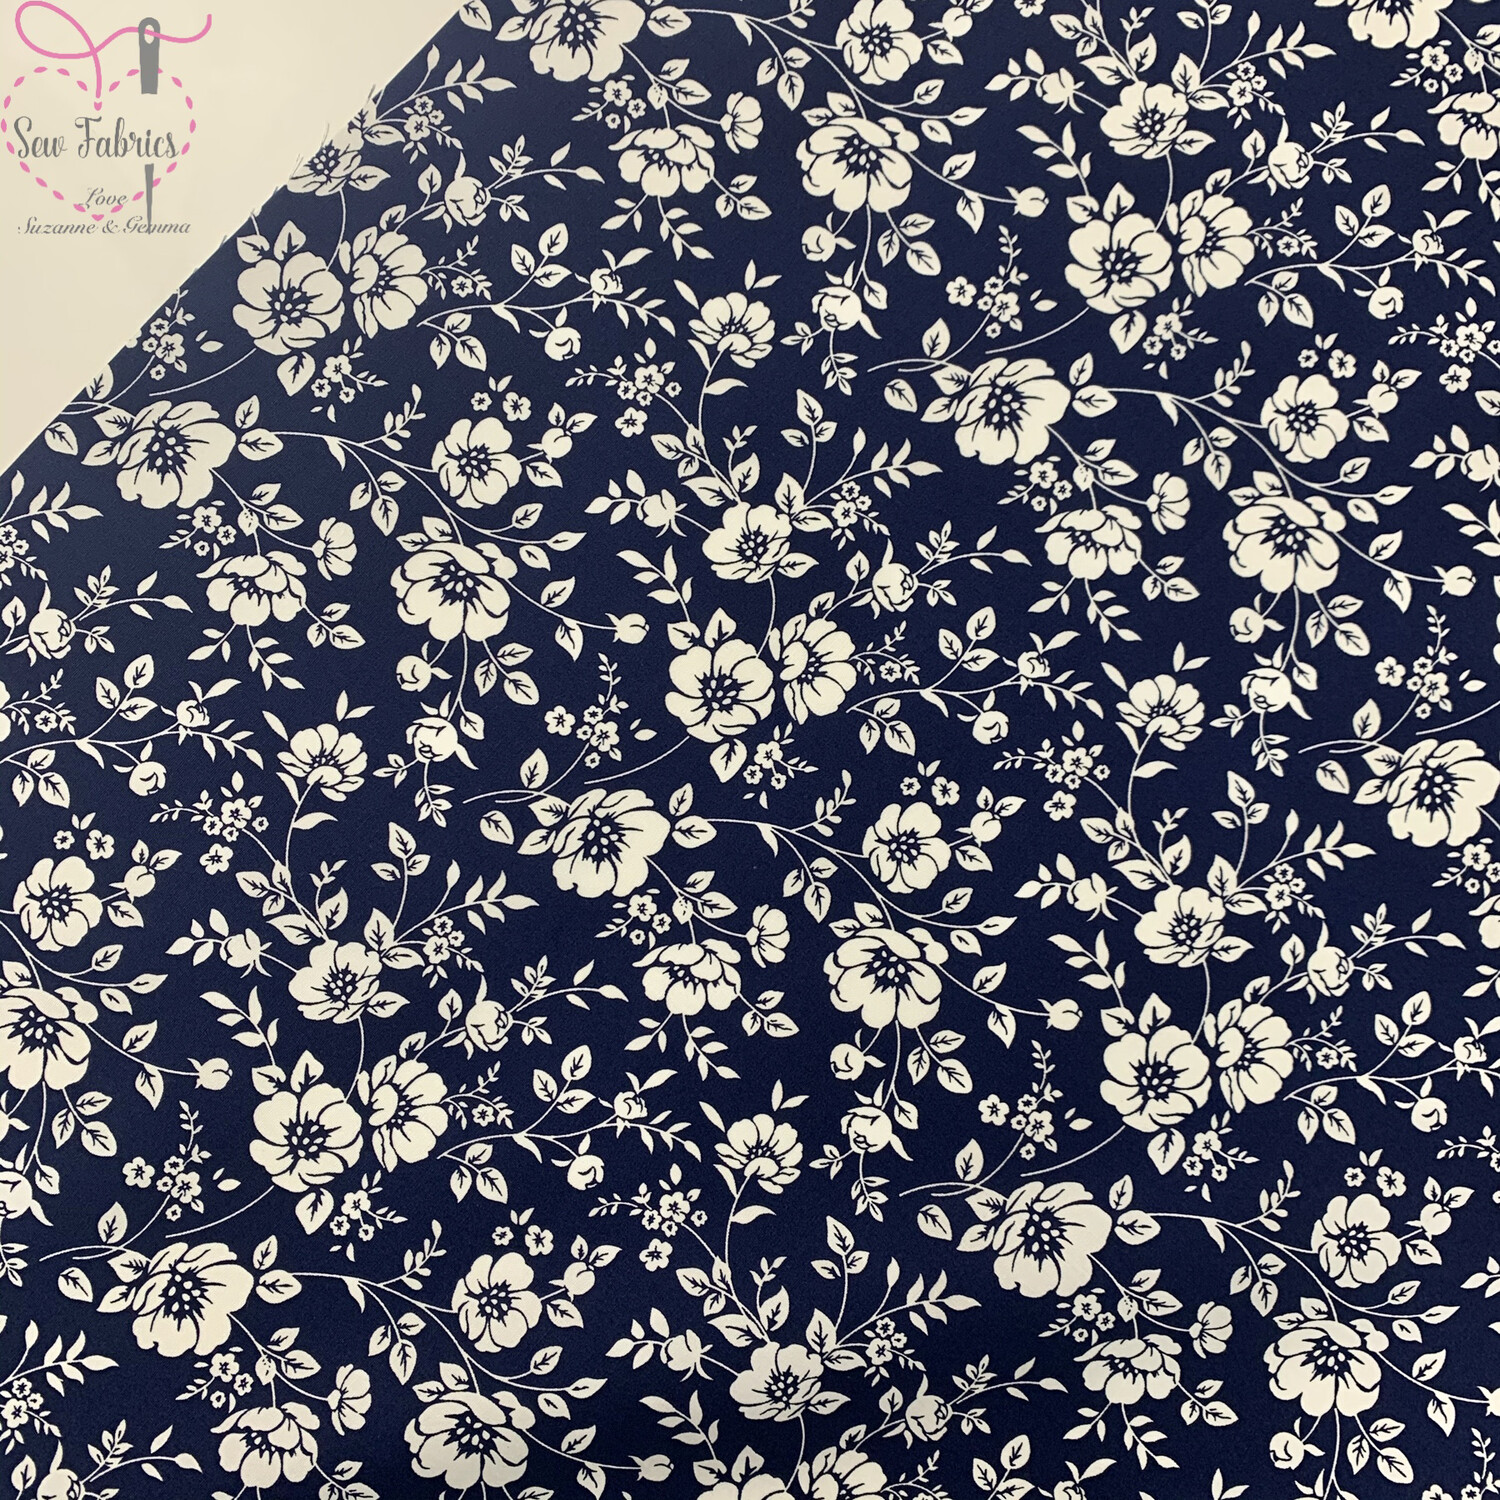 Rose & Hubble Navy Blue Ivory Bold Floral Fabric, 100% Cotton Poplin Material